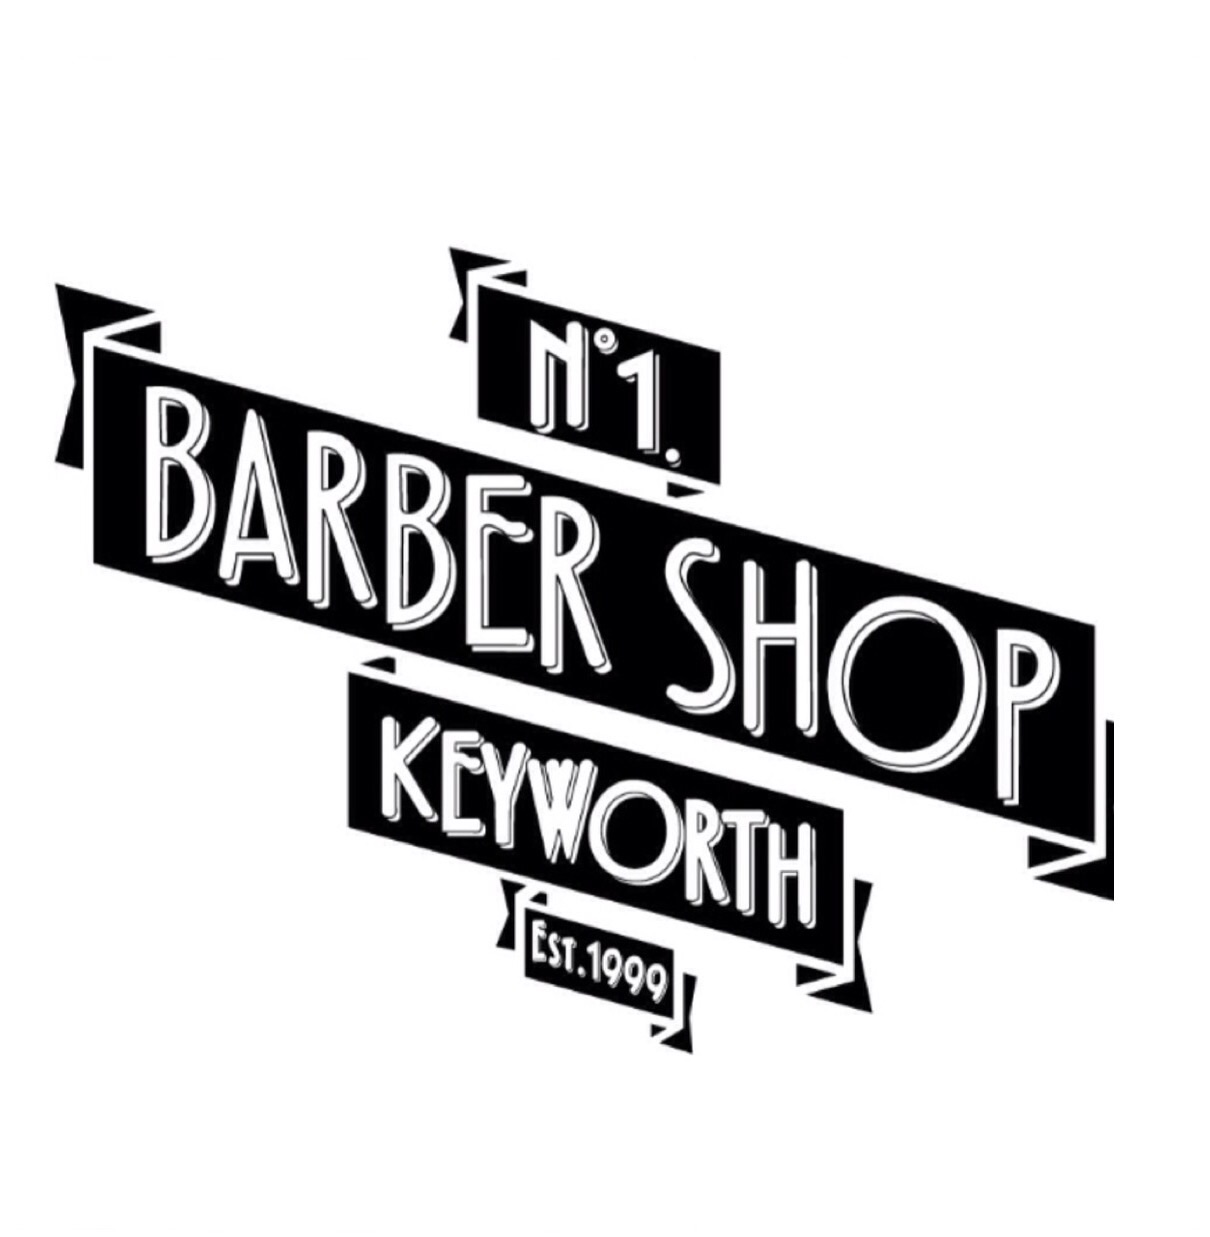 Number One Barbers: Keyworth